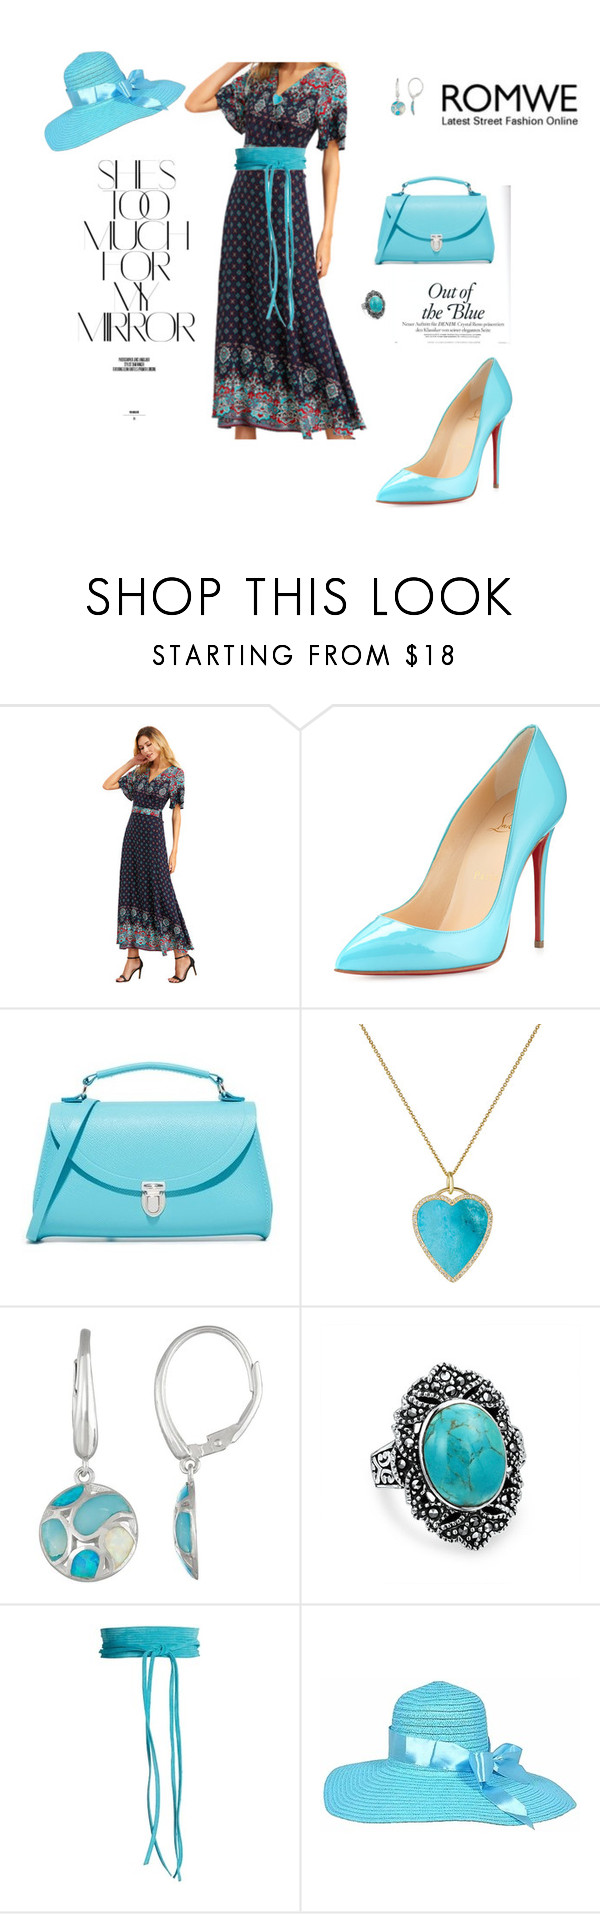 """out of the blue.."" by agnesmakoni ❤ liked on Polyvore featuring Christian Louboutin, The Cambridge Satchel Company, Jennifer Meyer Jewelry, Bling Jewelry, Mafalda von Hessen and Rika"